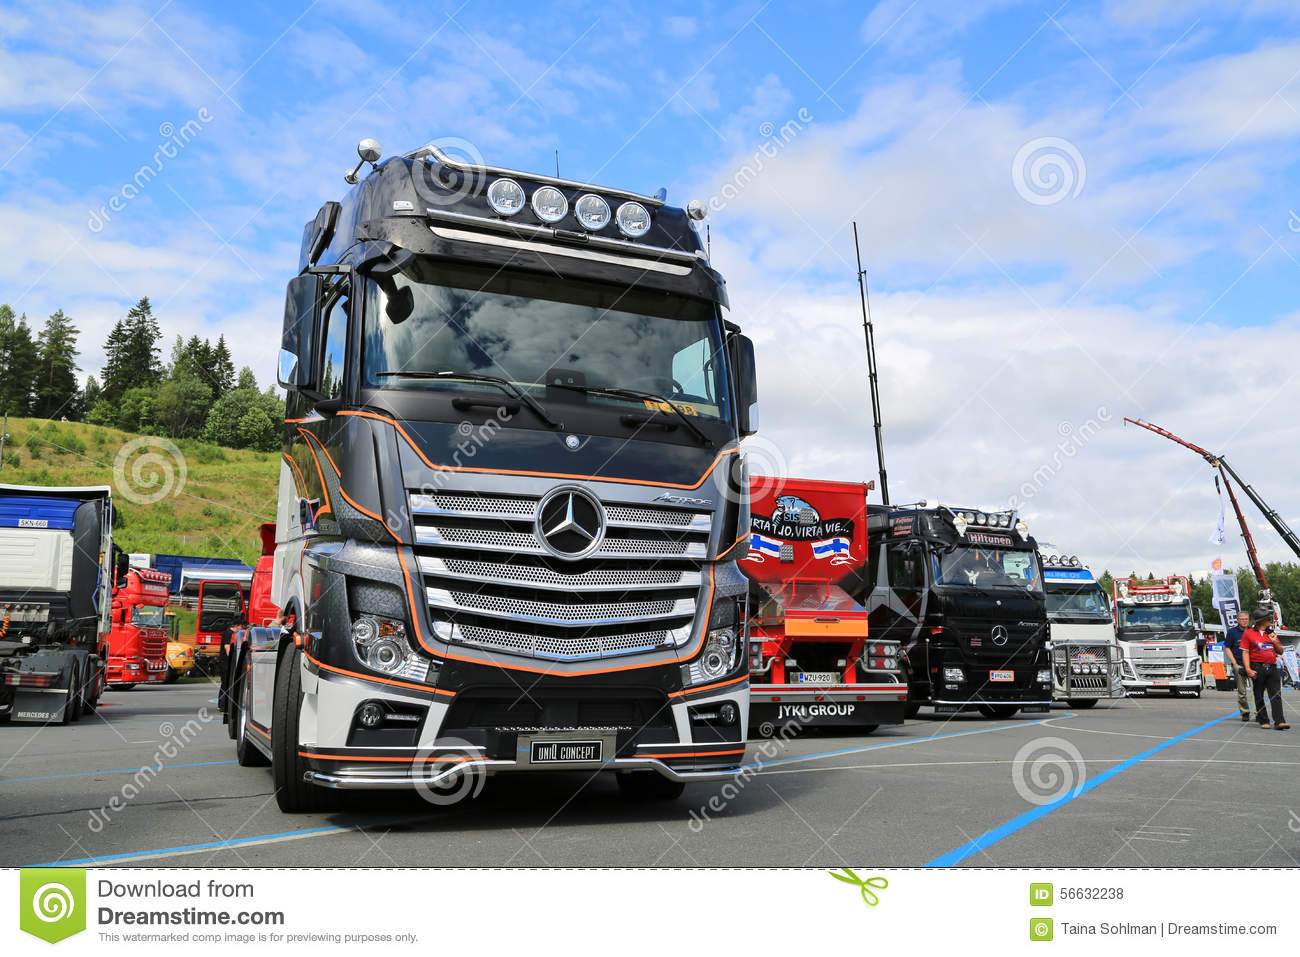 ... 2651 Uniq Concept truck on display at Tawastia Truck Weekend 2015